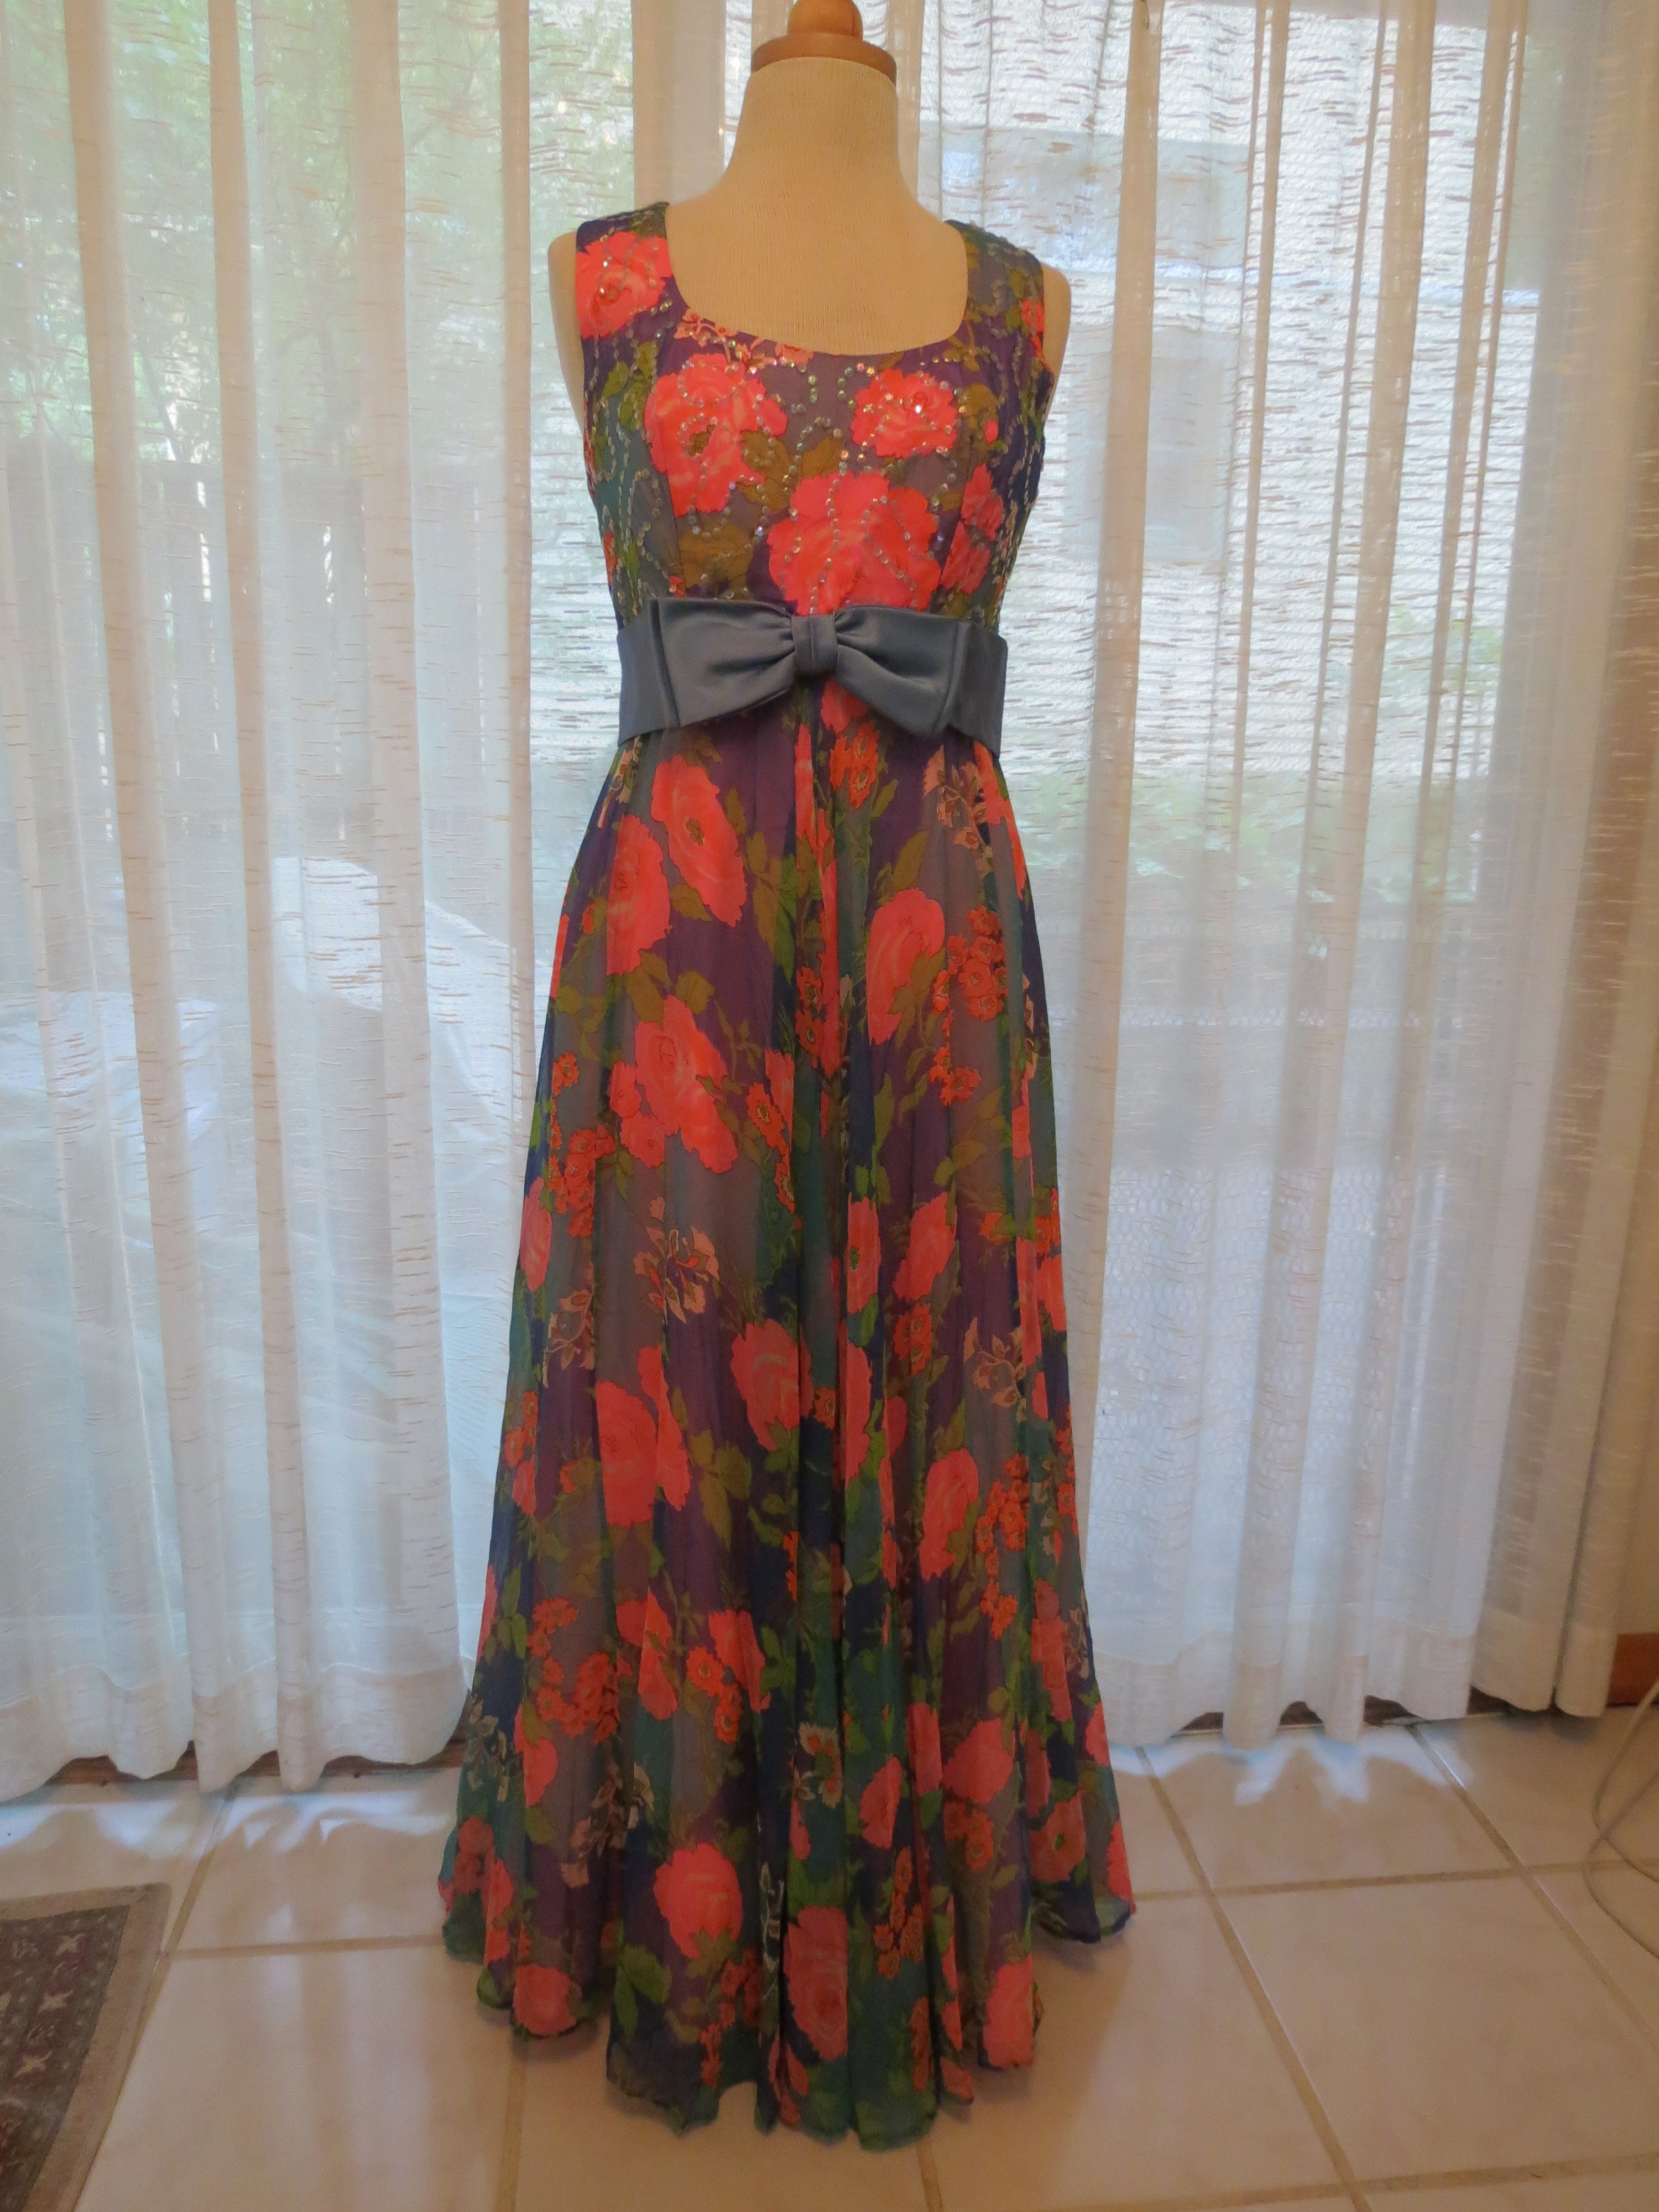 TRUE VINTAGE SUMMER FORMAL DRESS FROM THE 1970'S OR 1980'S